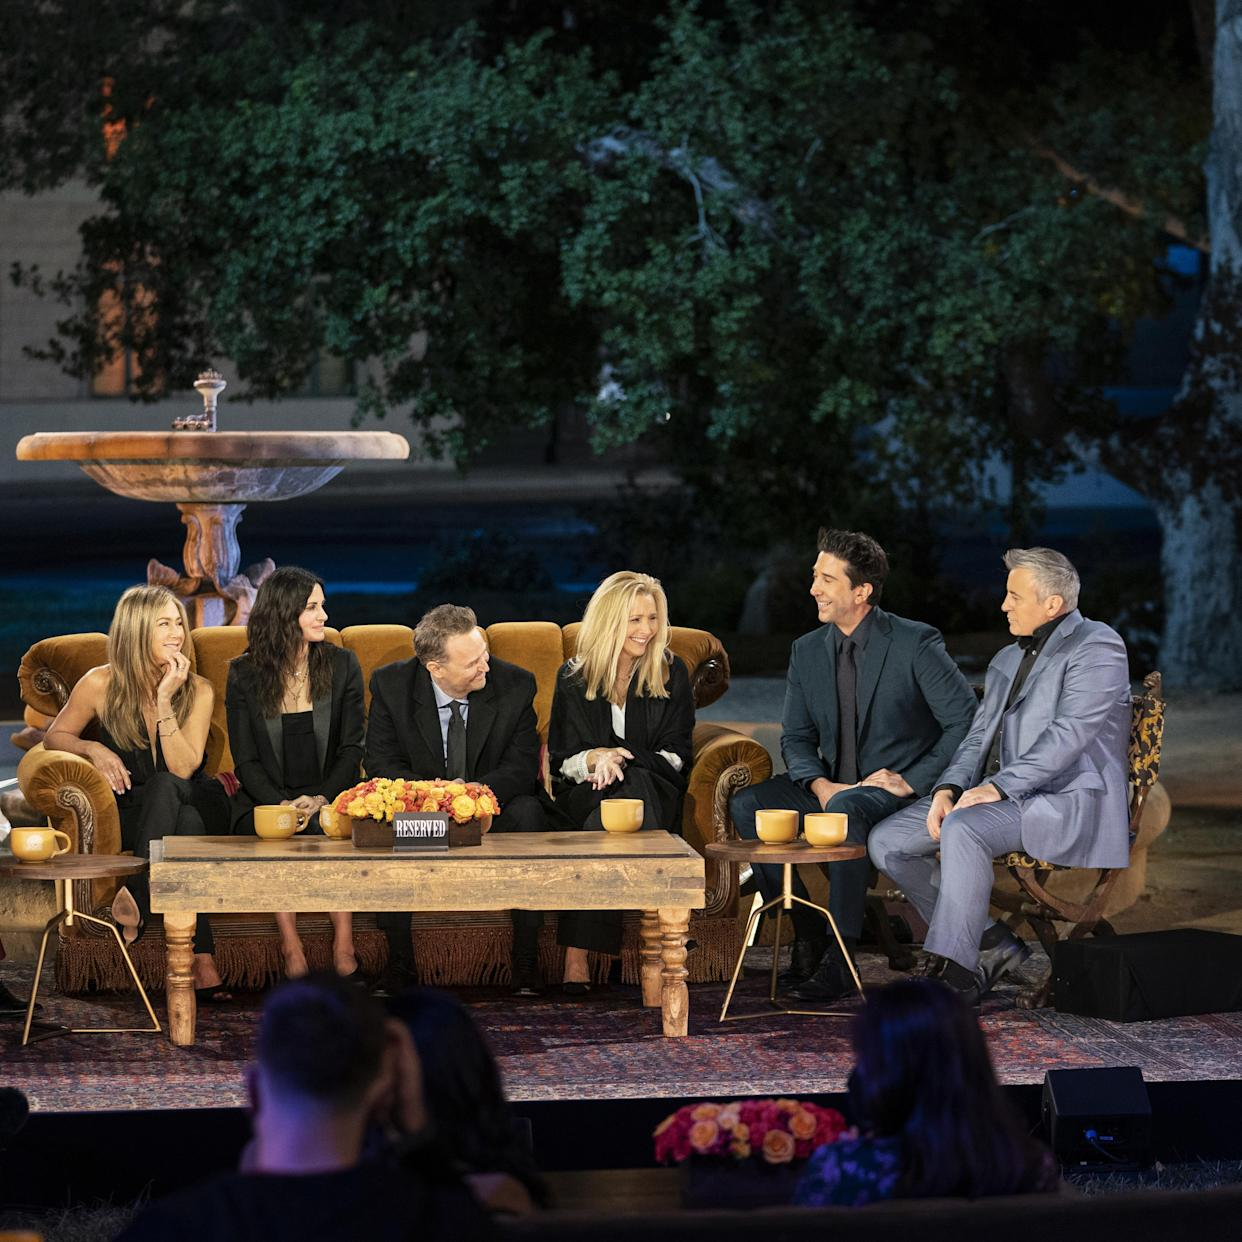 For the first time in 17 years, the cast of Friends reunites for a special celebration of the beloved, smash-hit comedy series. Taped on the original soundstage, Friends: The Reunion finds Jennifer Aniston, Courteney Cox, Lisa Kudrow, Matt LeBlanc, Matthew Perry, and David Schwimmer joined by moderator James Corden and a star-studded roster of special guests as they relive the show's fan-favorite and unforgettable moments. This once-in-a-lifetime special event honors the iconic series, which continues to permeate the zeitgeist today, with a hilarious and heartfelt night full of laughter and tears. Could we be any more excited?